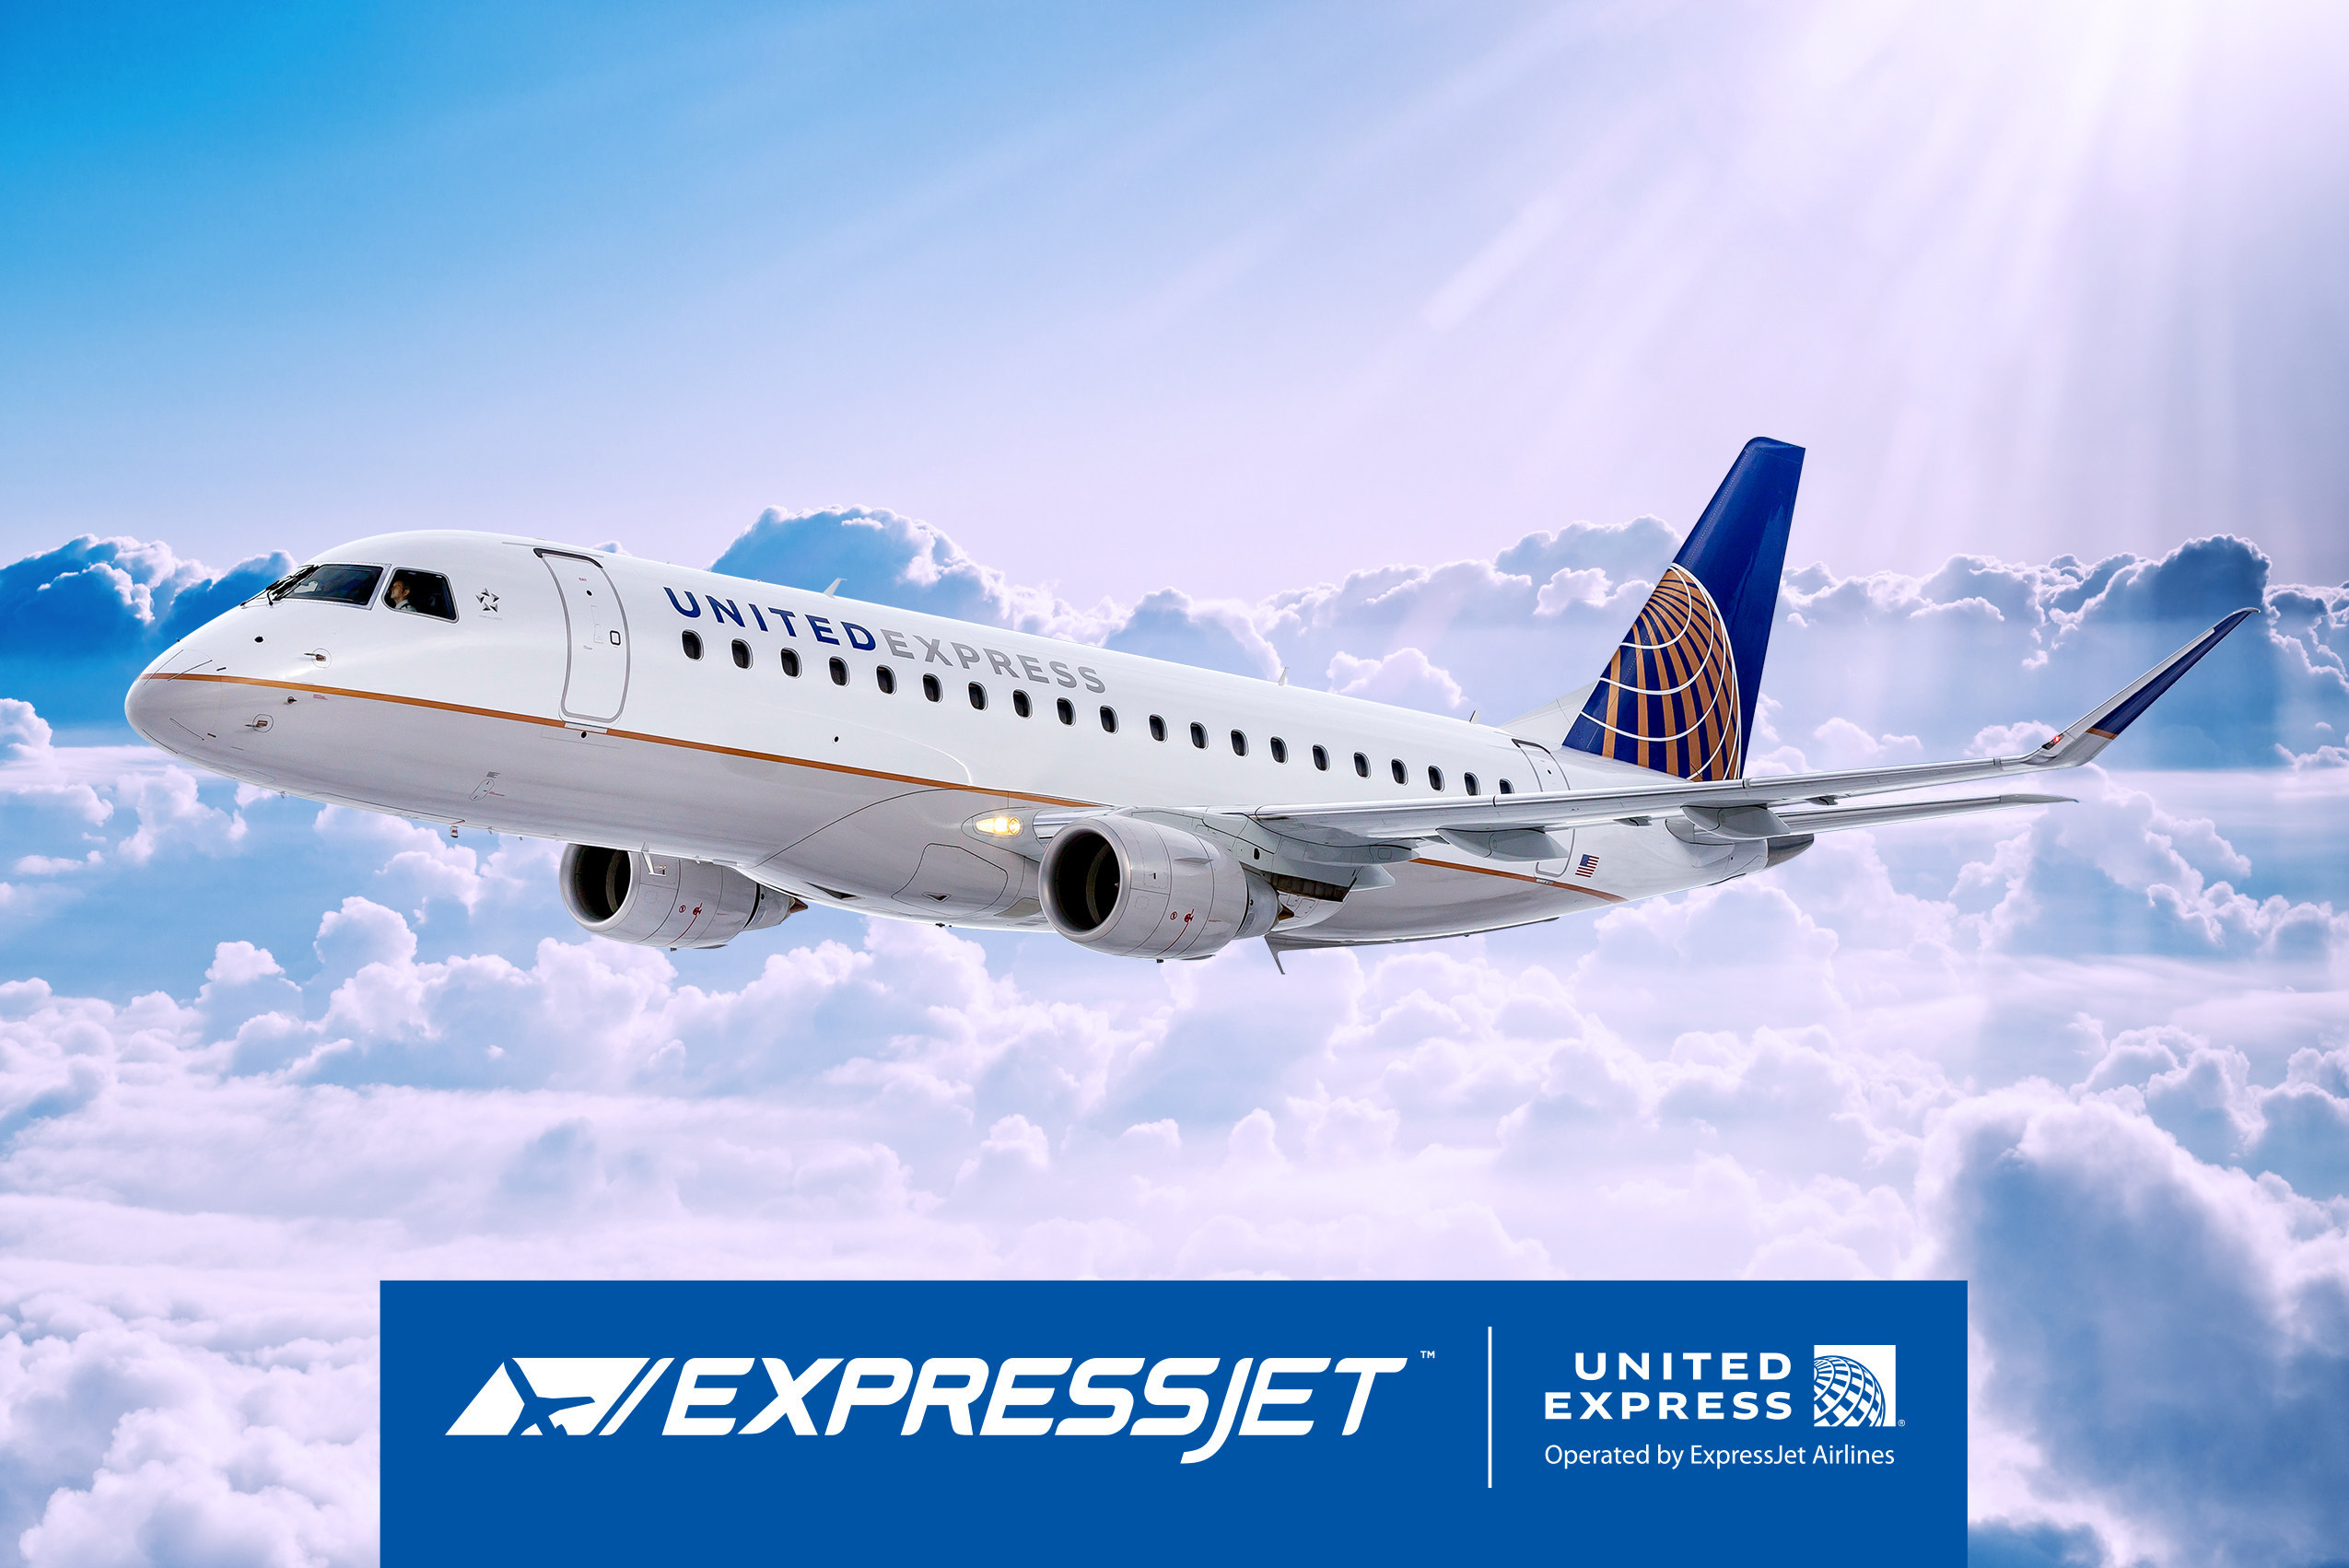 Expressjet Airlines Announces Houston As Its First Embraer